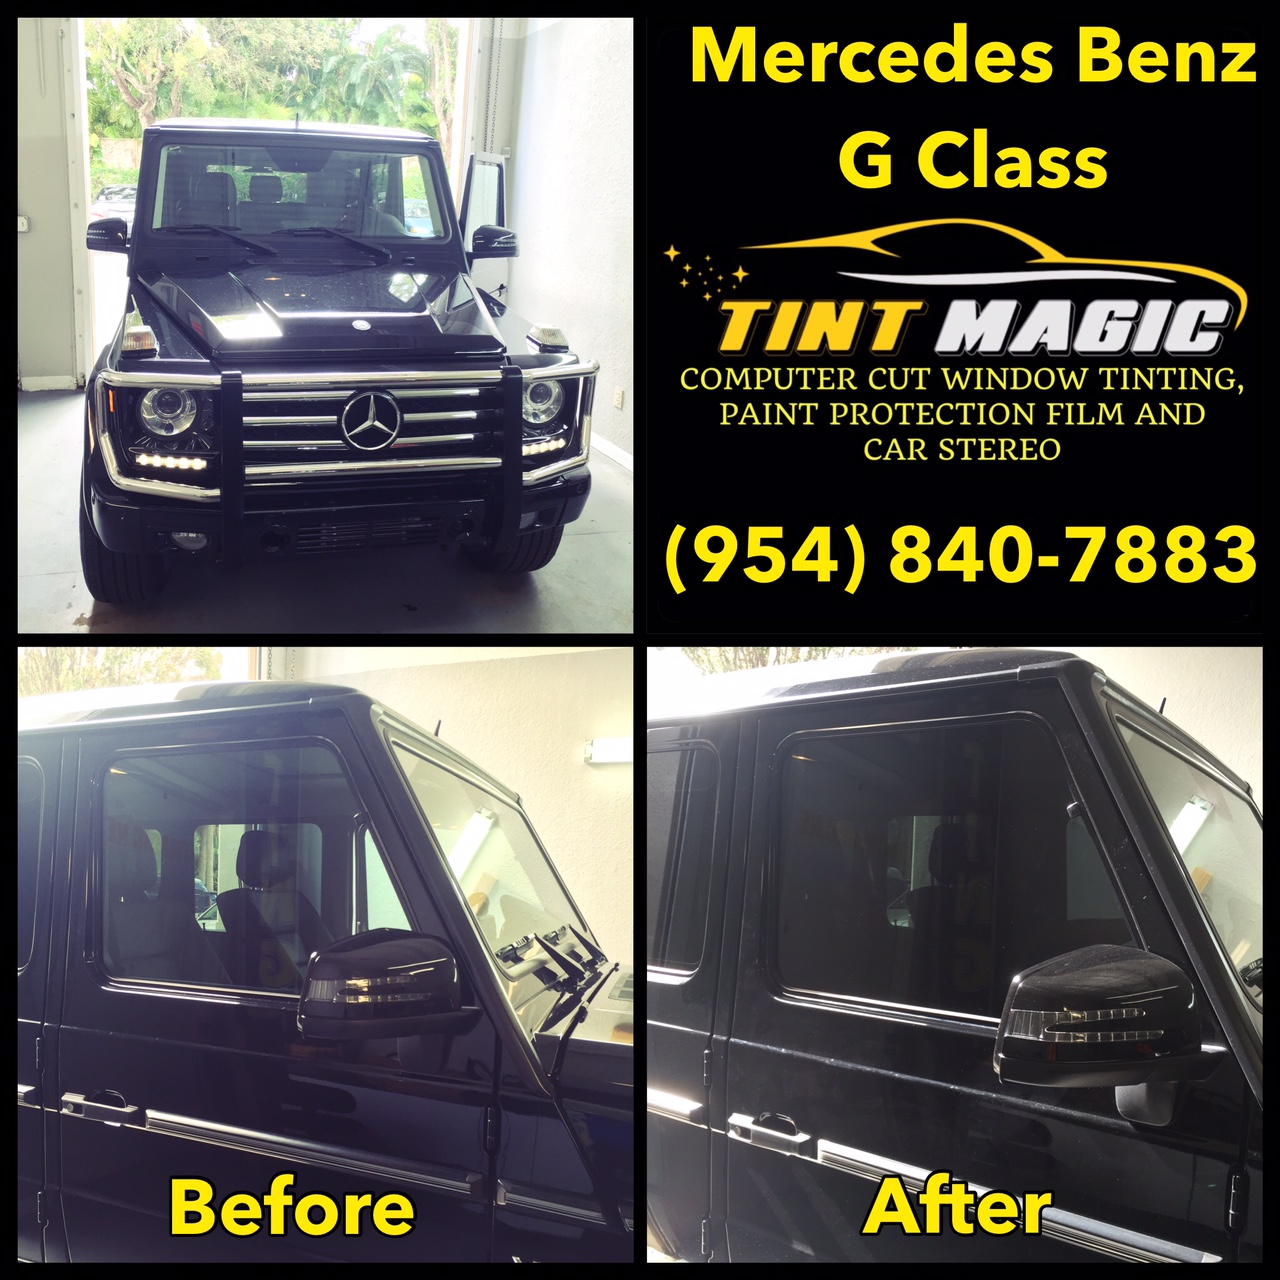 Mercedes Benz G Class at Tint Magic Window Tinting